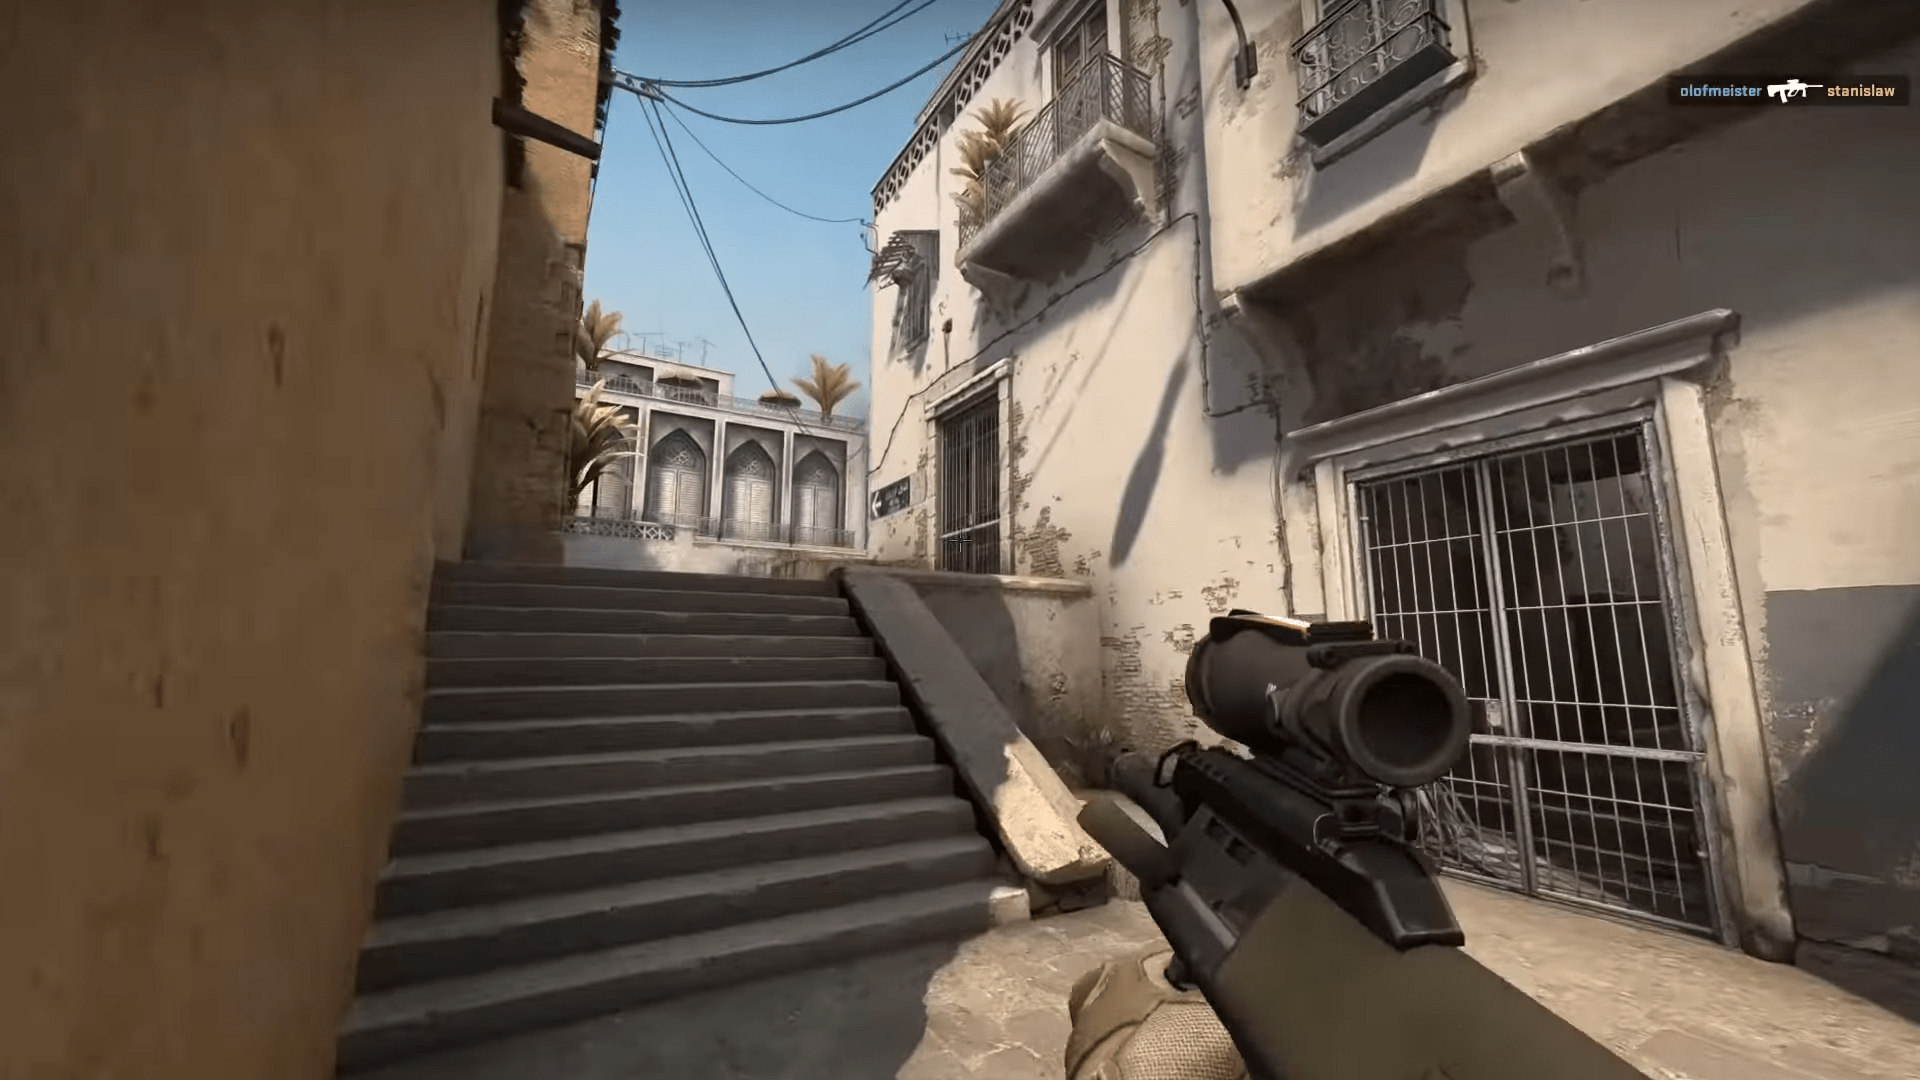 CS:GO – Renegades Clutch An Easy Oceania Win To Make 7 Tournament Wins Straight